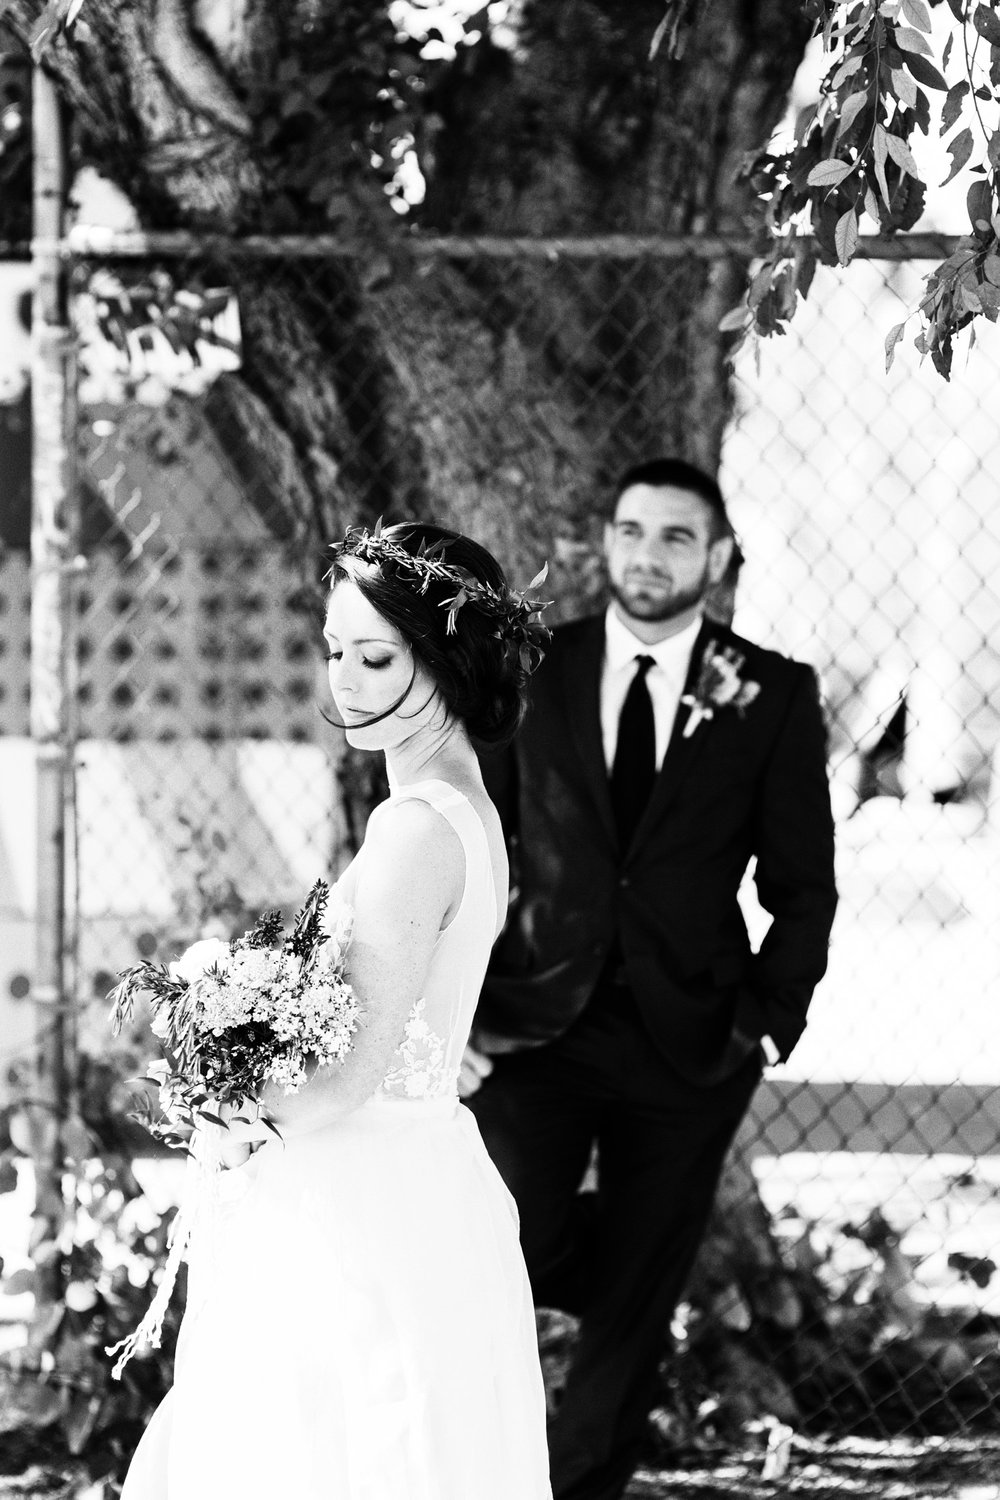 Las Vegas Wedding Photographer - Downtown Las Vegas - Mandy and Pete-13.jpg